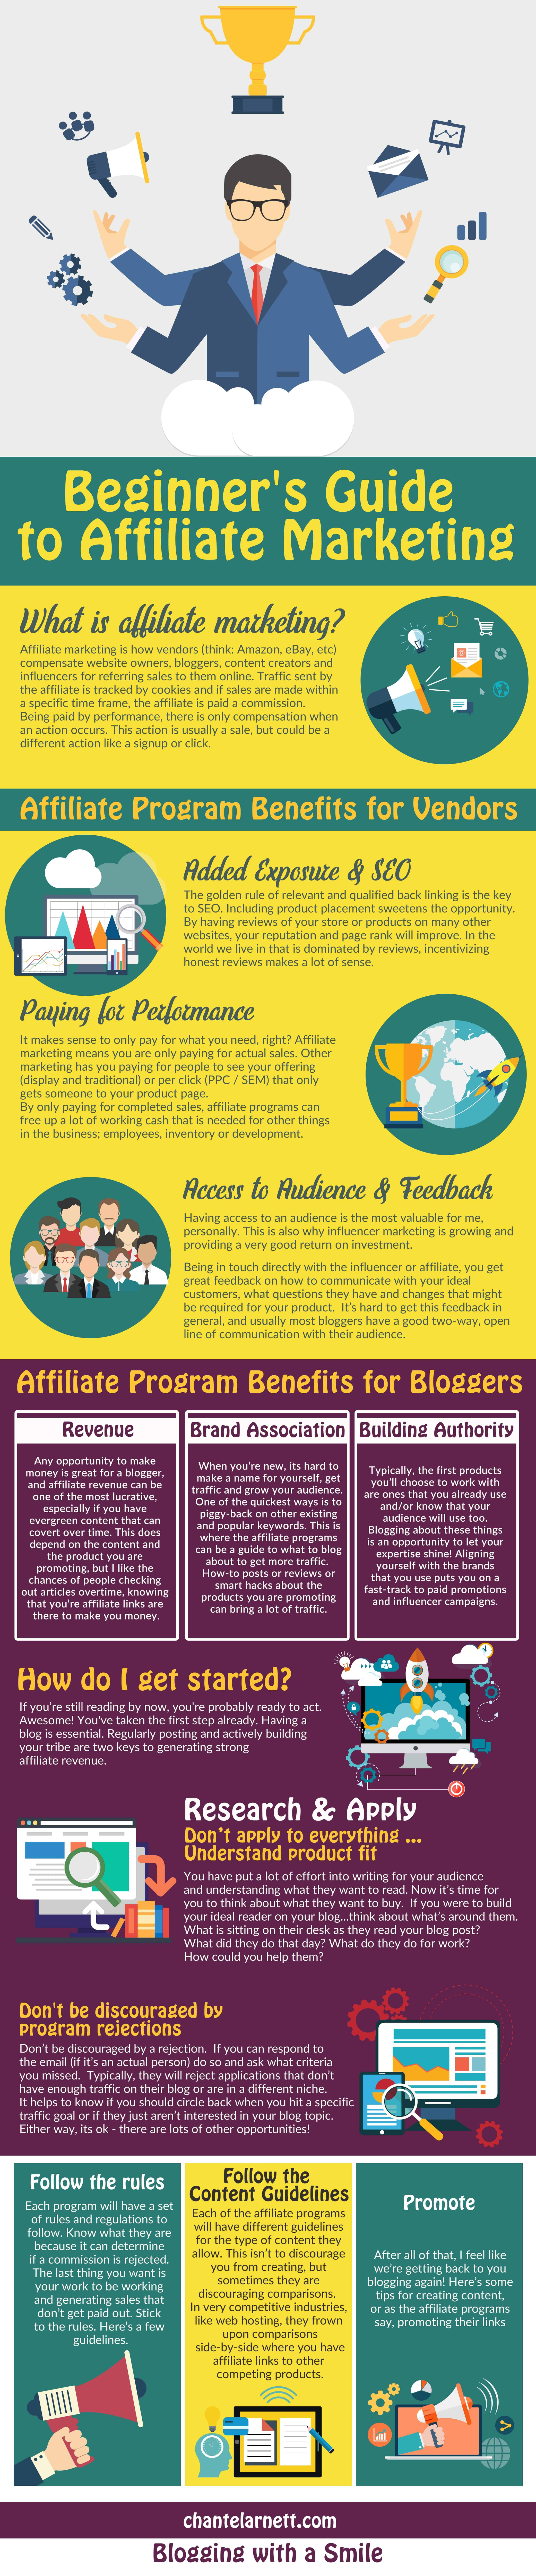 Beginner's Guide to Affiliate Marketing [INFOGRAPHIC]